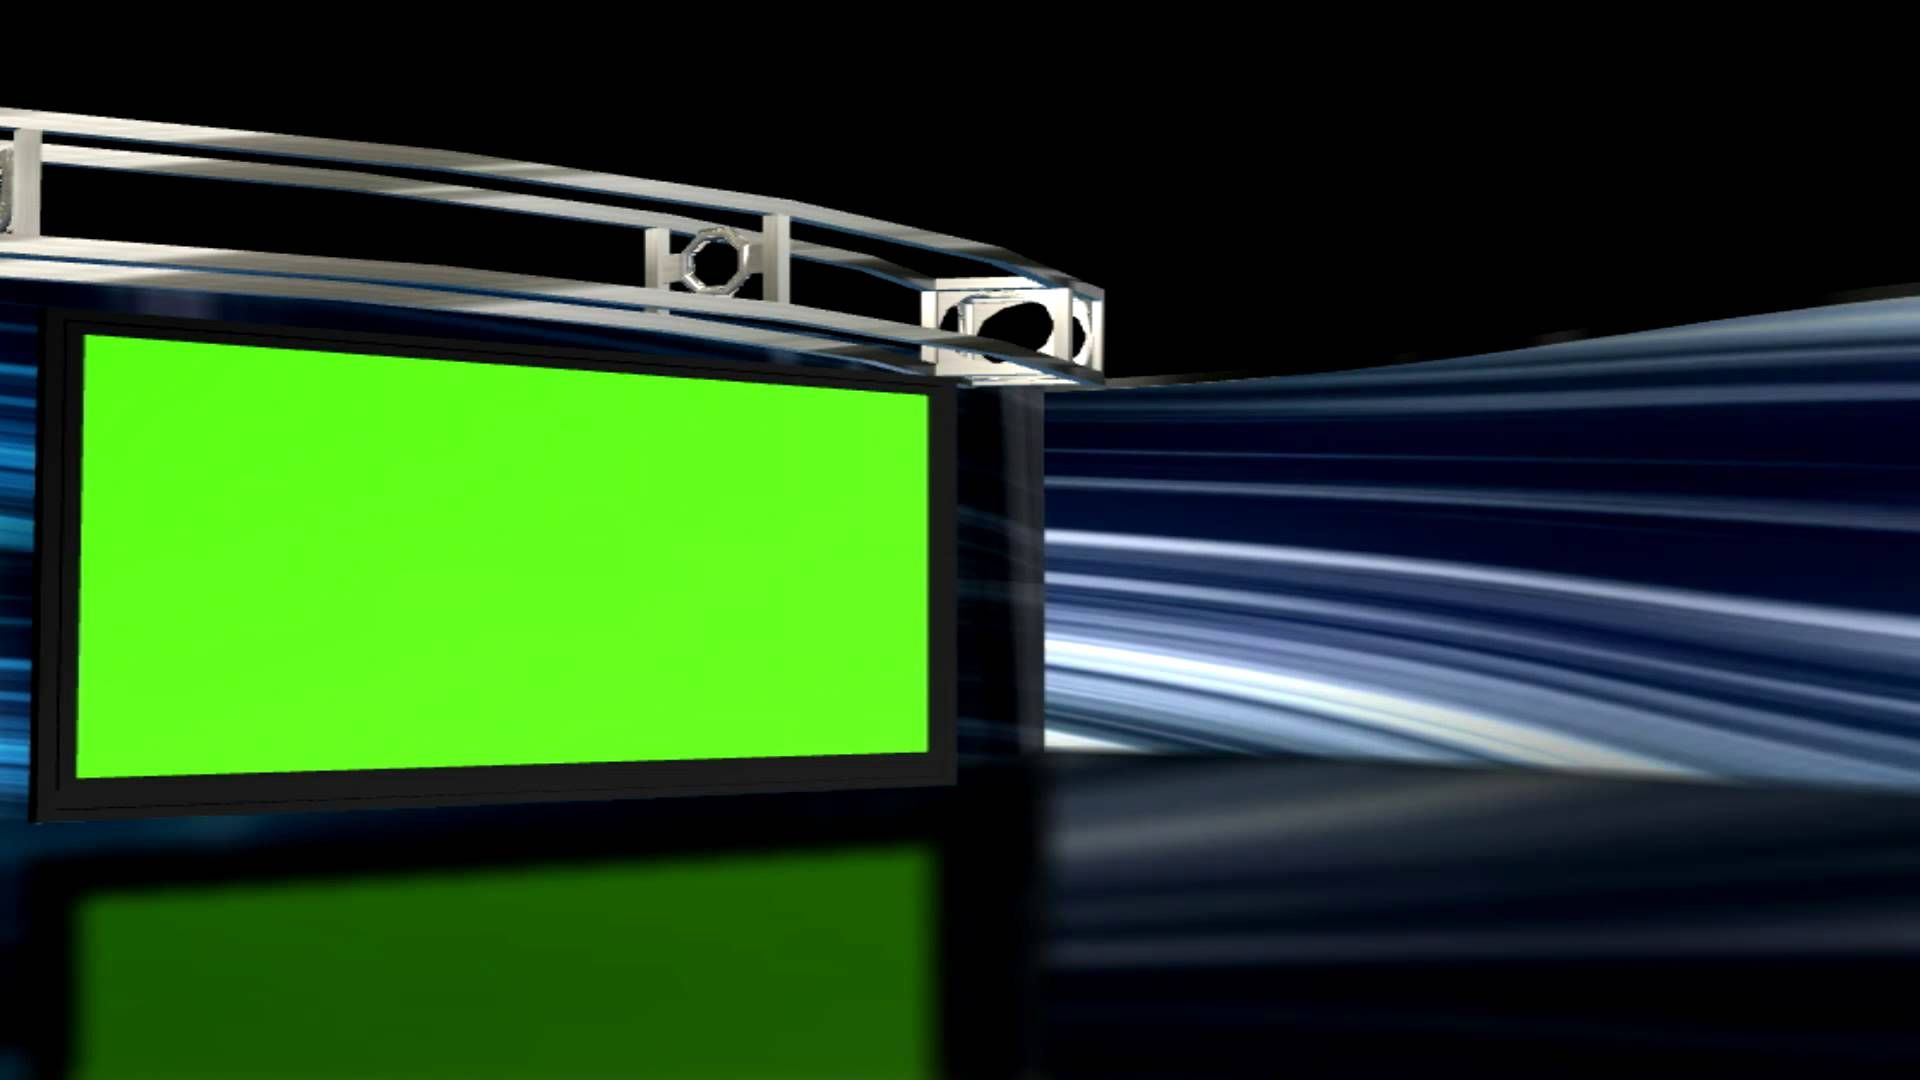 Hd Virtual Studio Set Background 1 With Green Screen Tv Set Virtual Studio Chroma Key Chroma Key Backgrounds